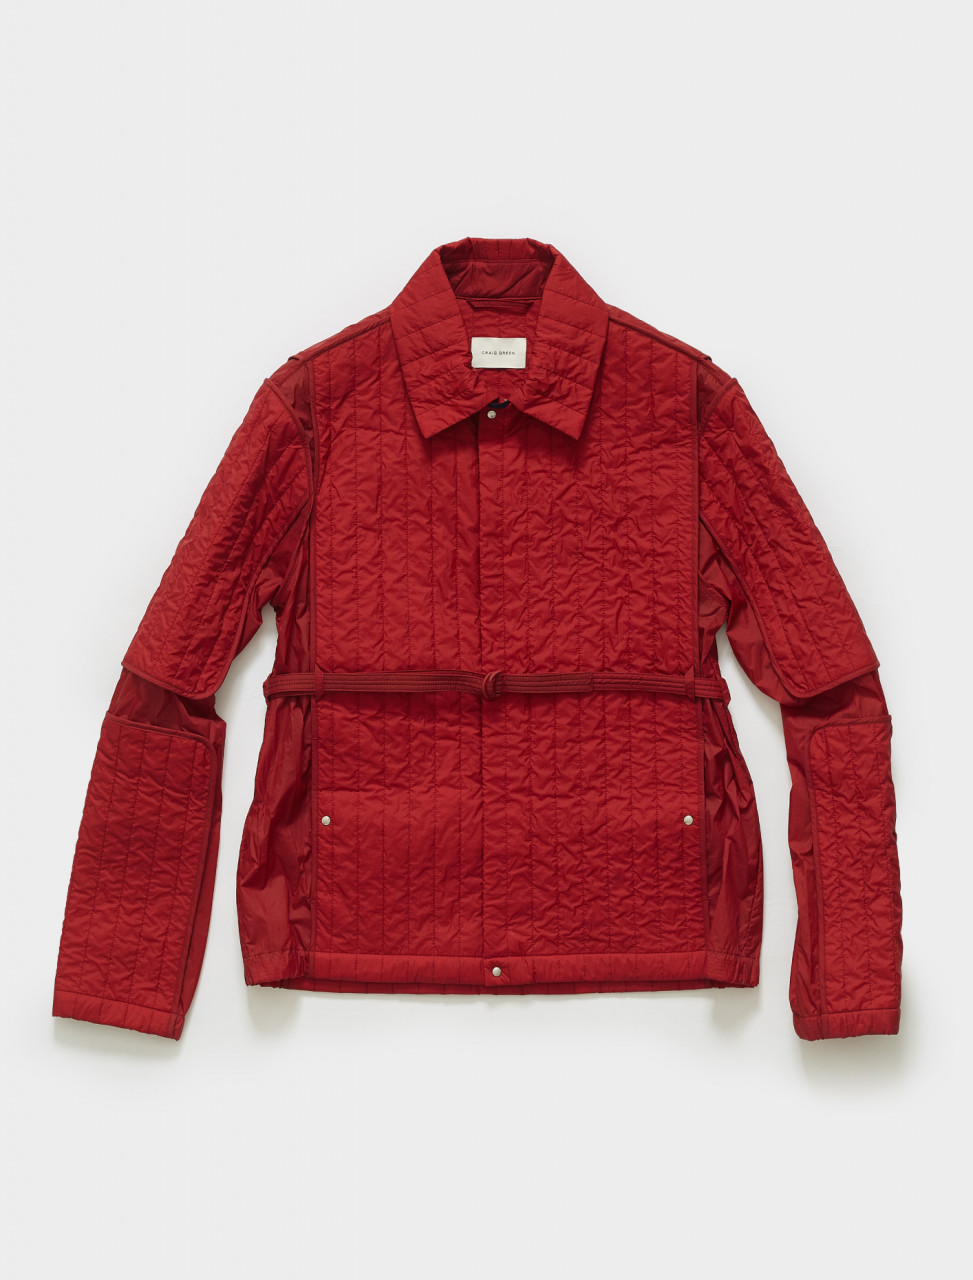 CGSS21CWOJKT09 CRAIG GREEN QUILTED SKIN JACKET IN RED